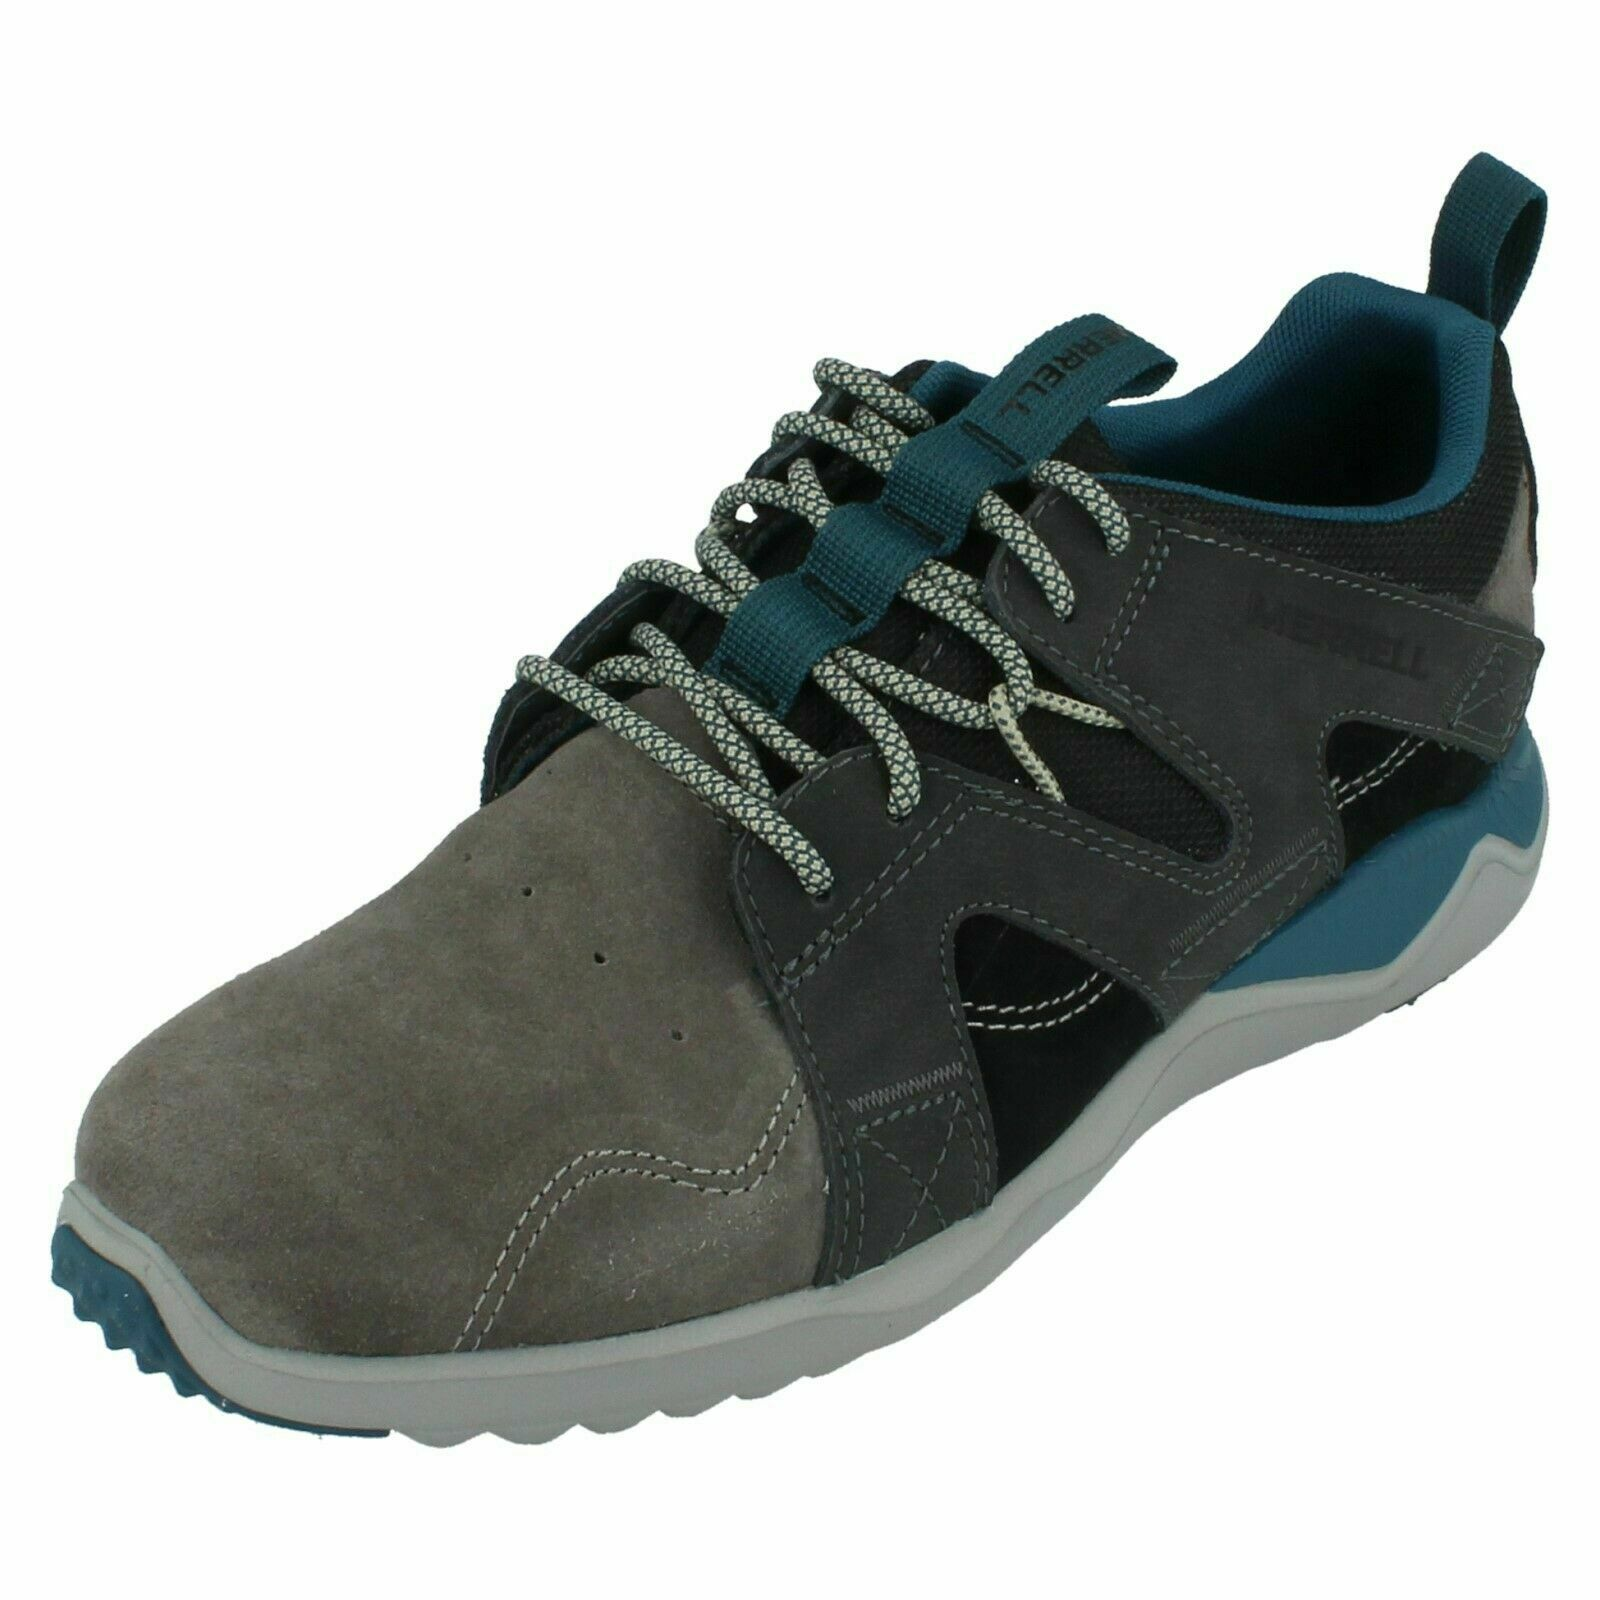 Men merrell lace up trainers - 1six8 ltr